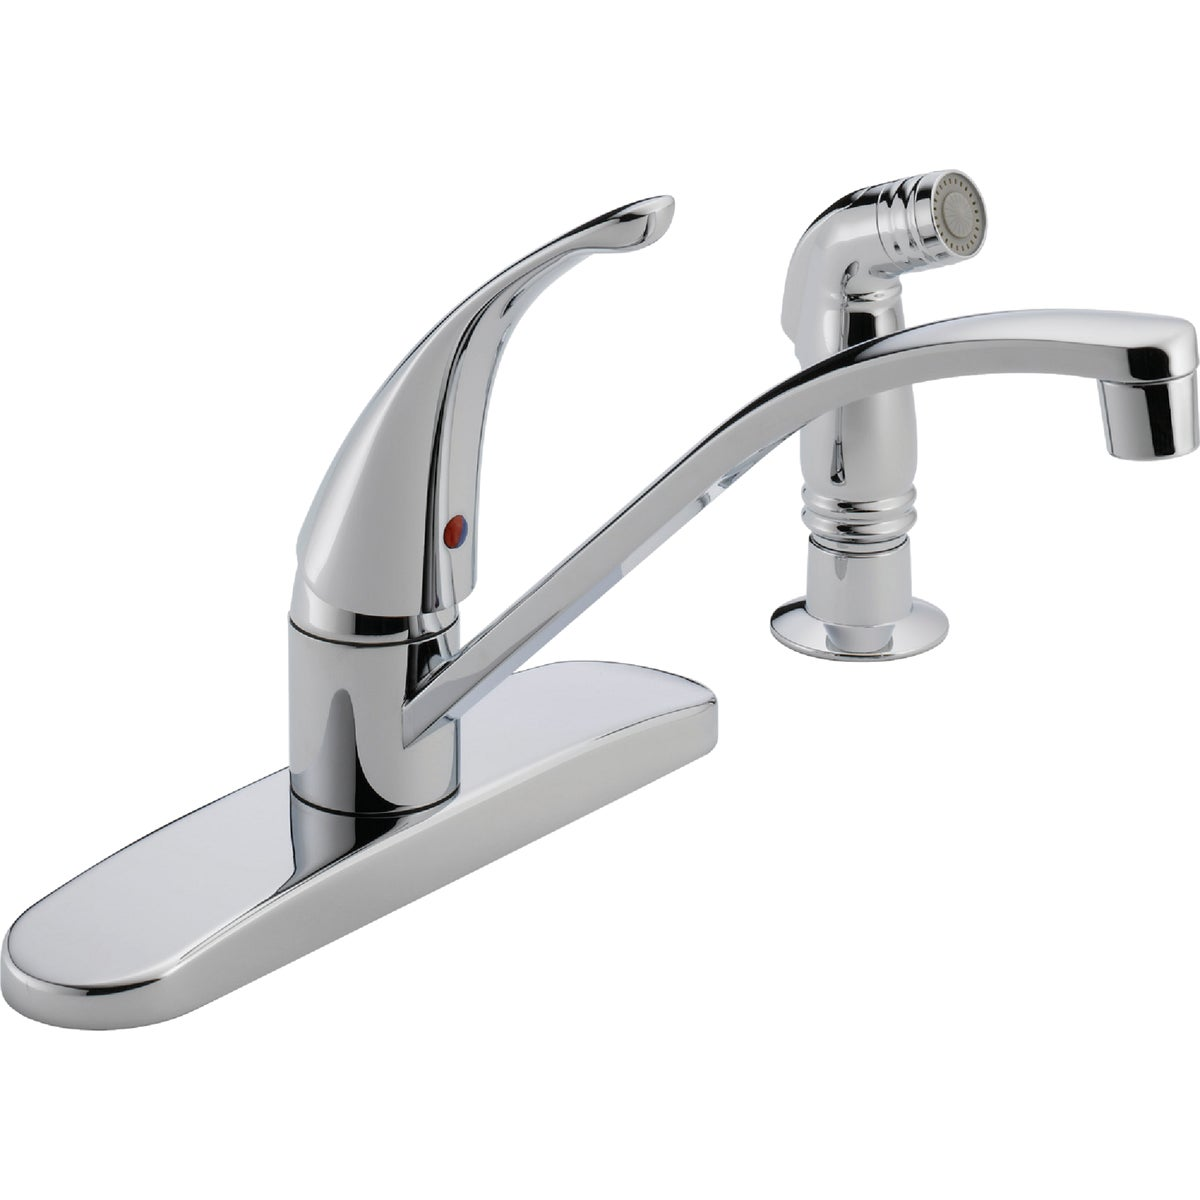 1H CH KIT FAUCET W/SPRY - P188500LF by Delta Faucet Co